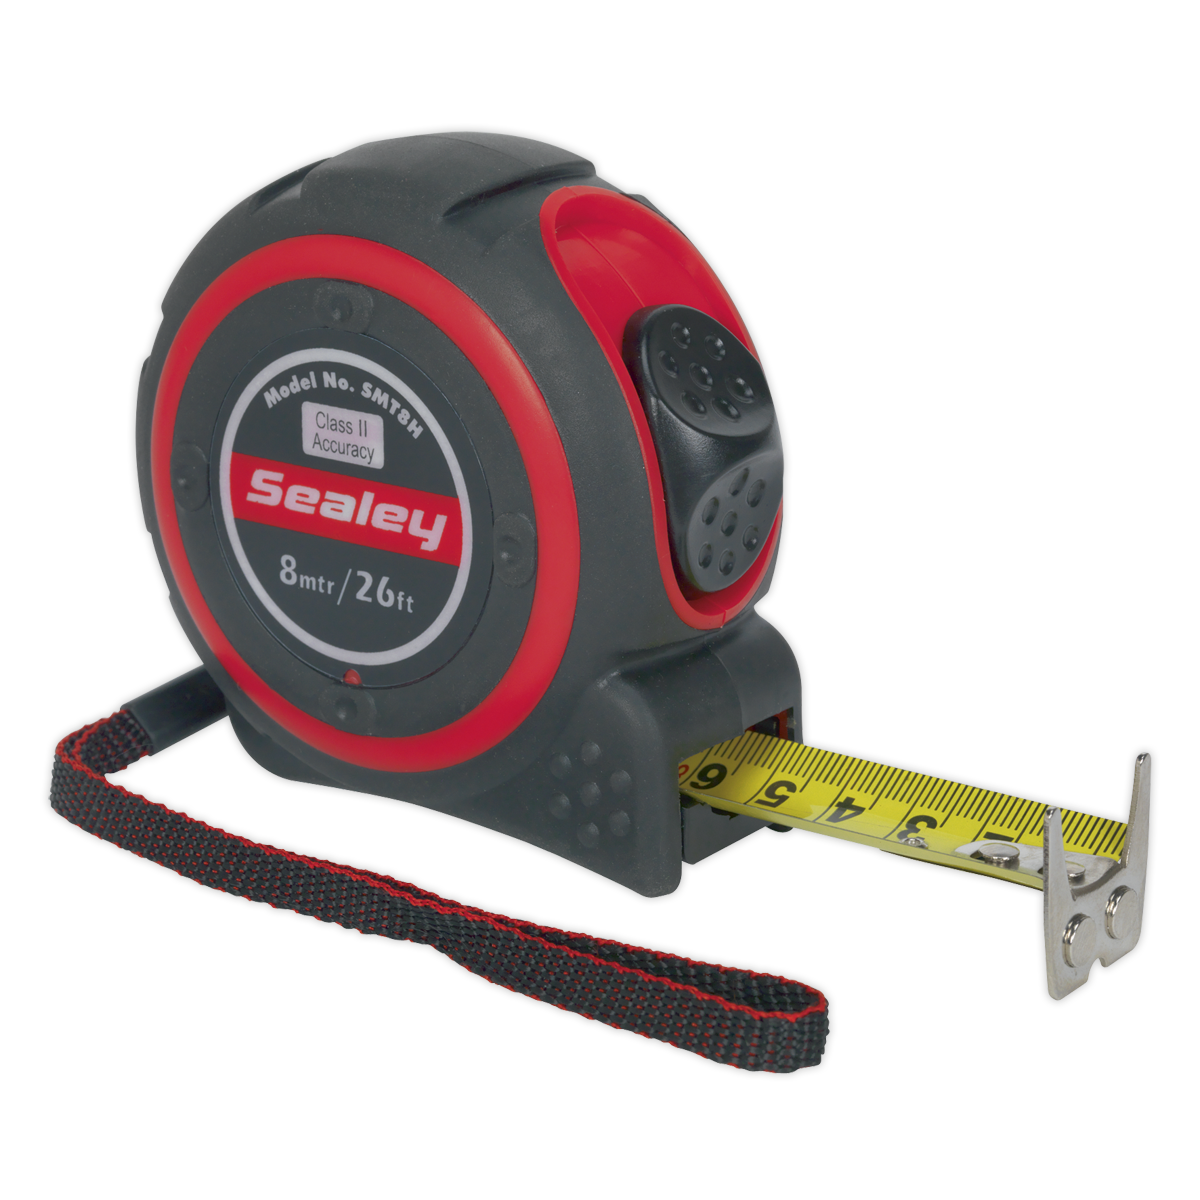 Heavy-Duty Measuring Tape 8mtr(26ft)